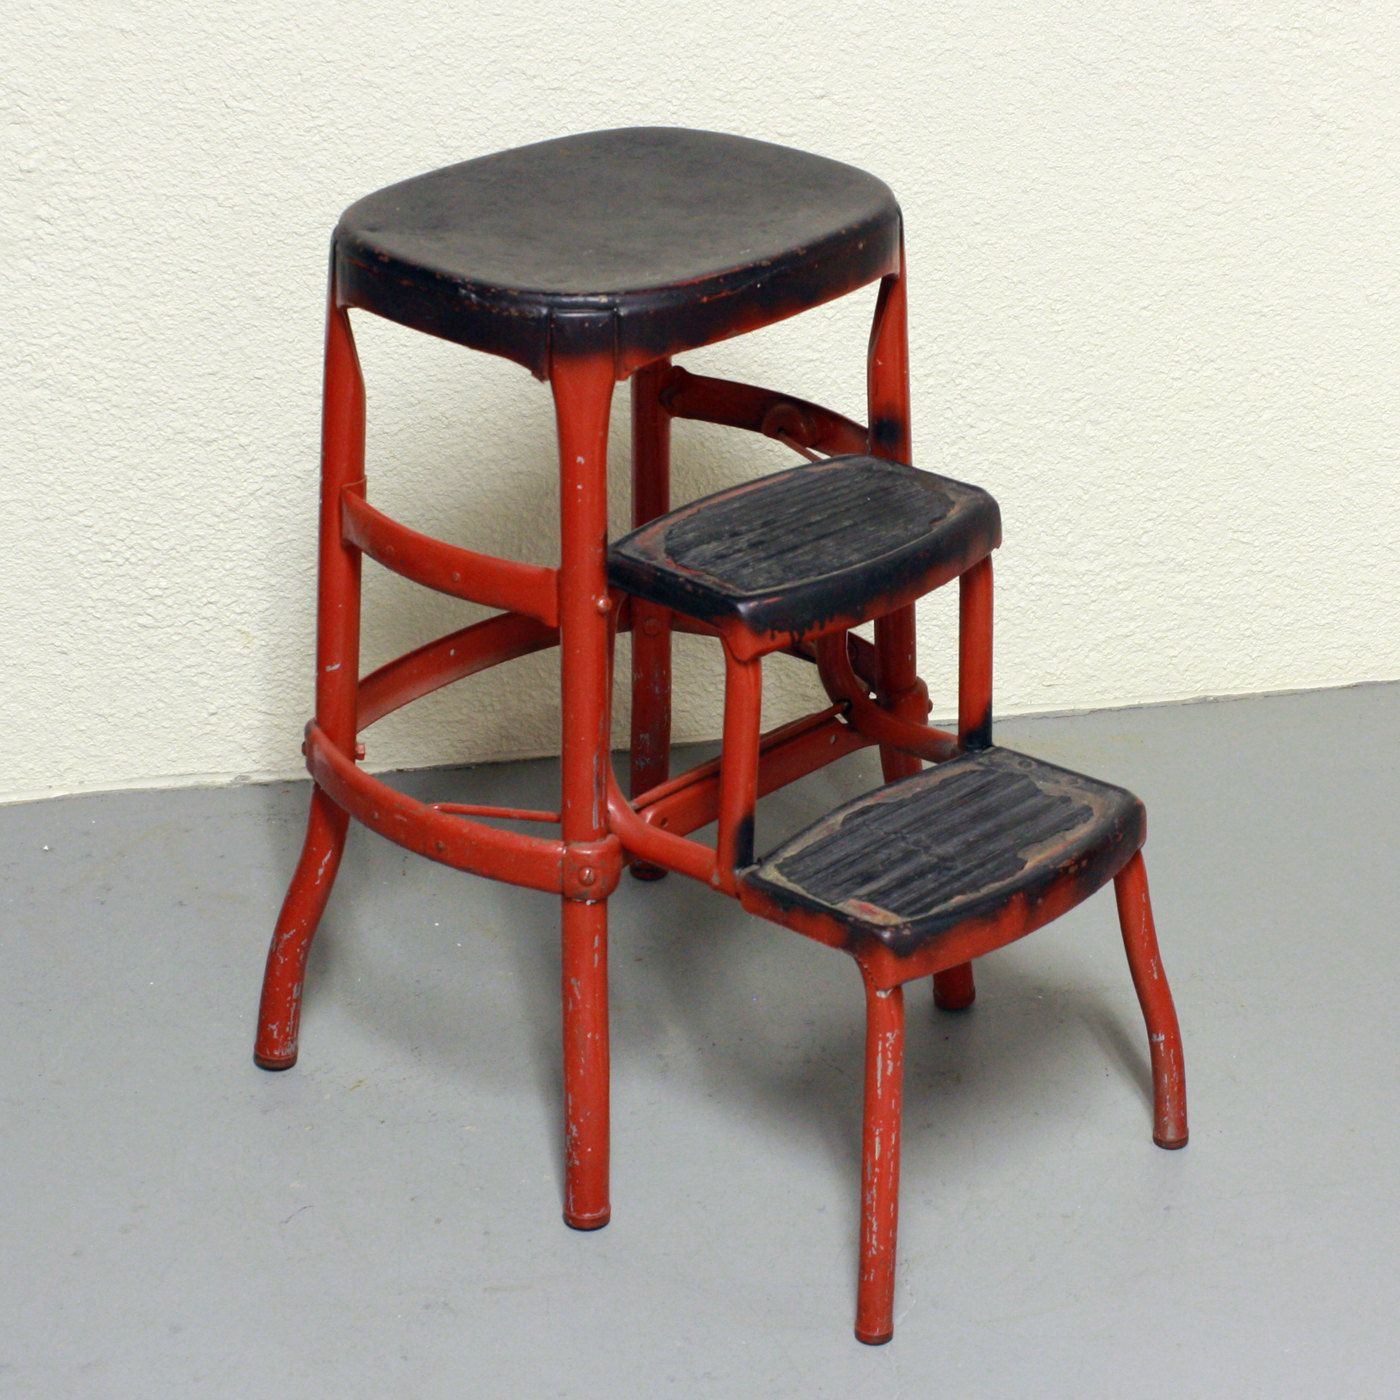 100+ Old Fashioned Kitchen Chair Step Stool - Rustic Kitchen ...